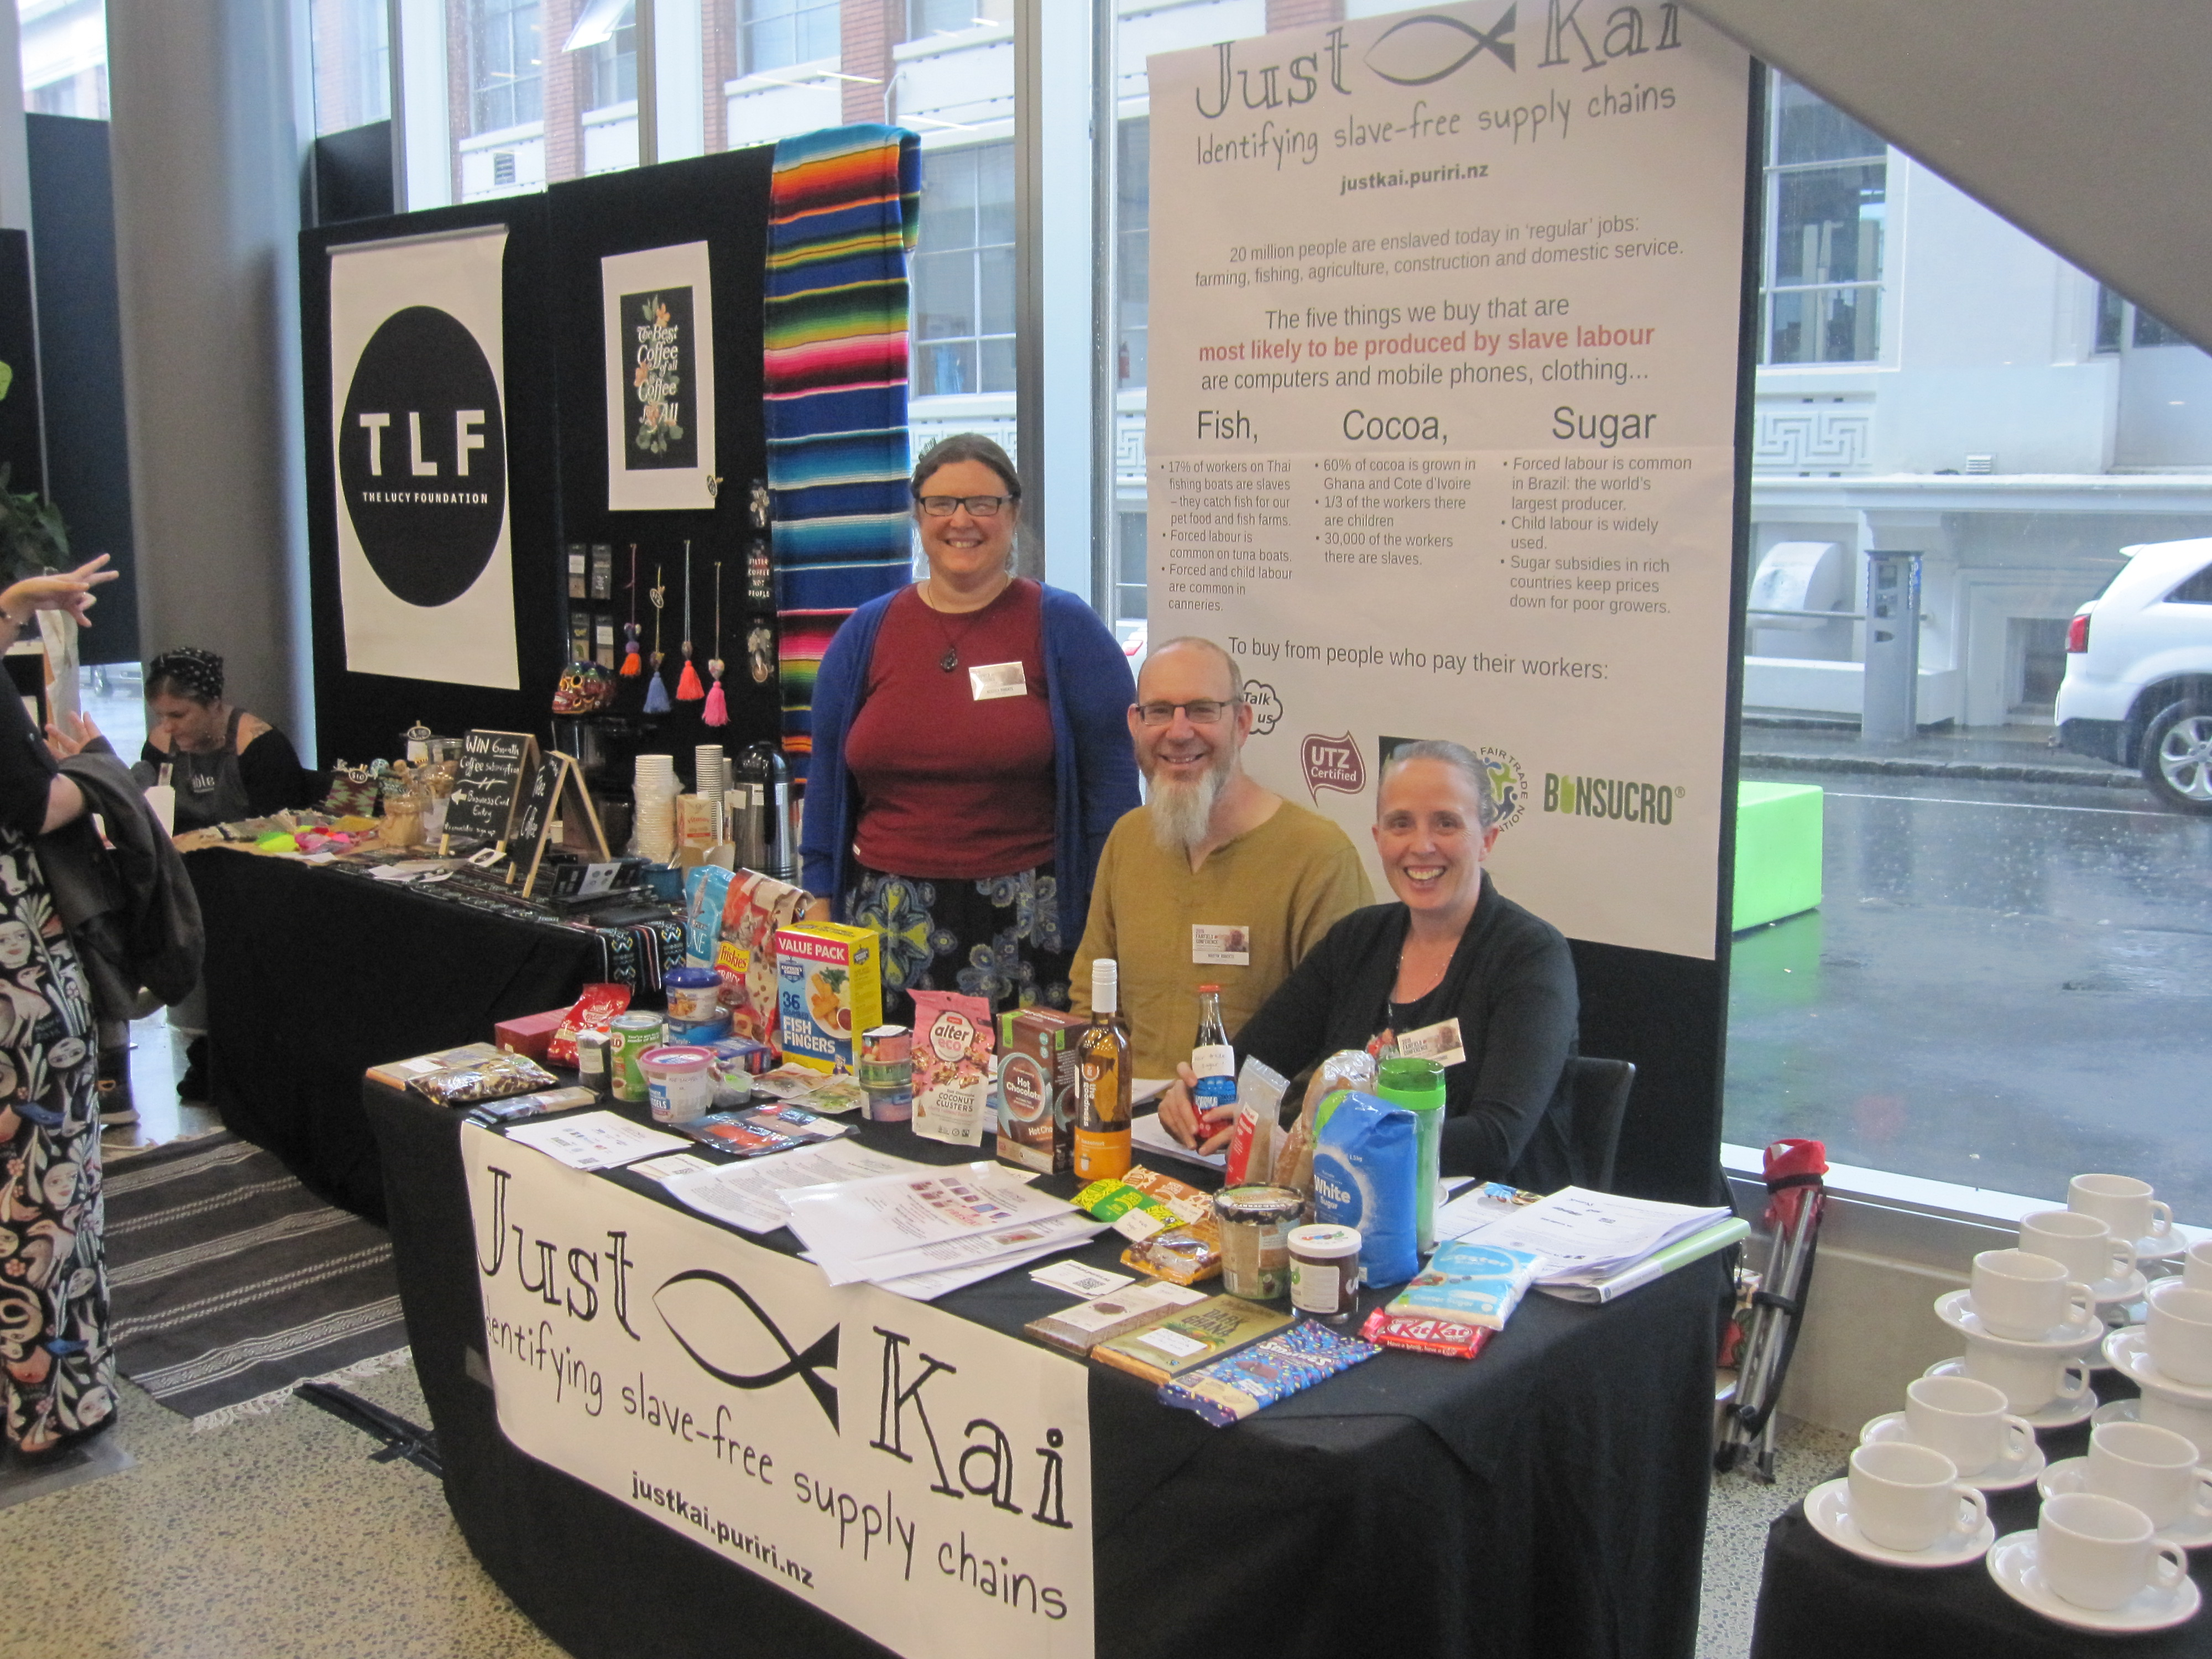 Heather, Martin and Anna behind the Just Kai table.  There are groceries on the table and a poster behind.